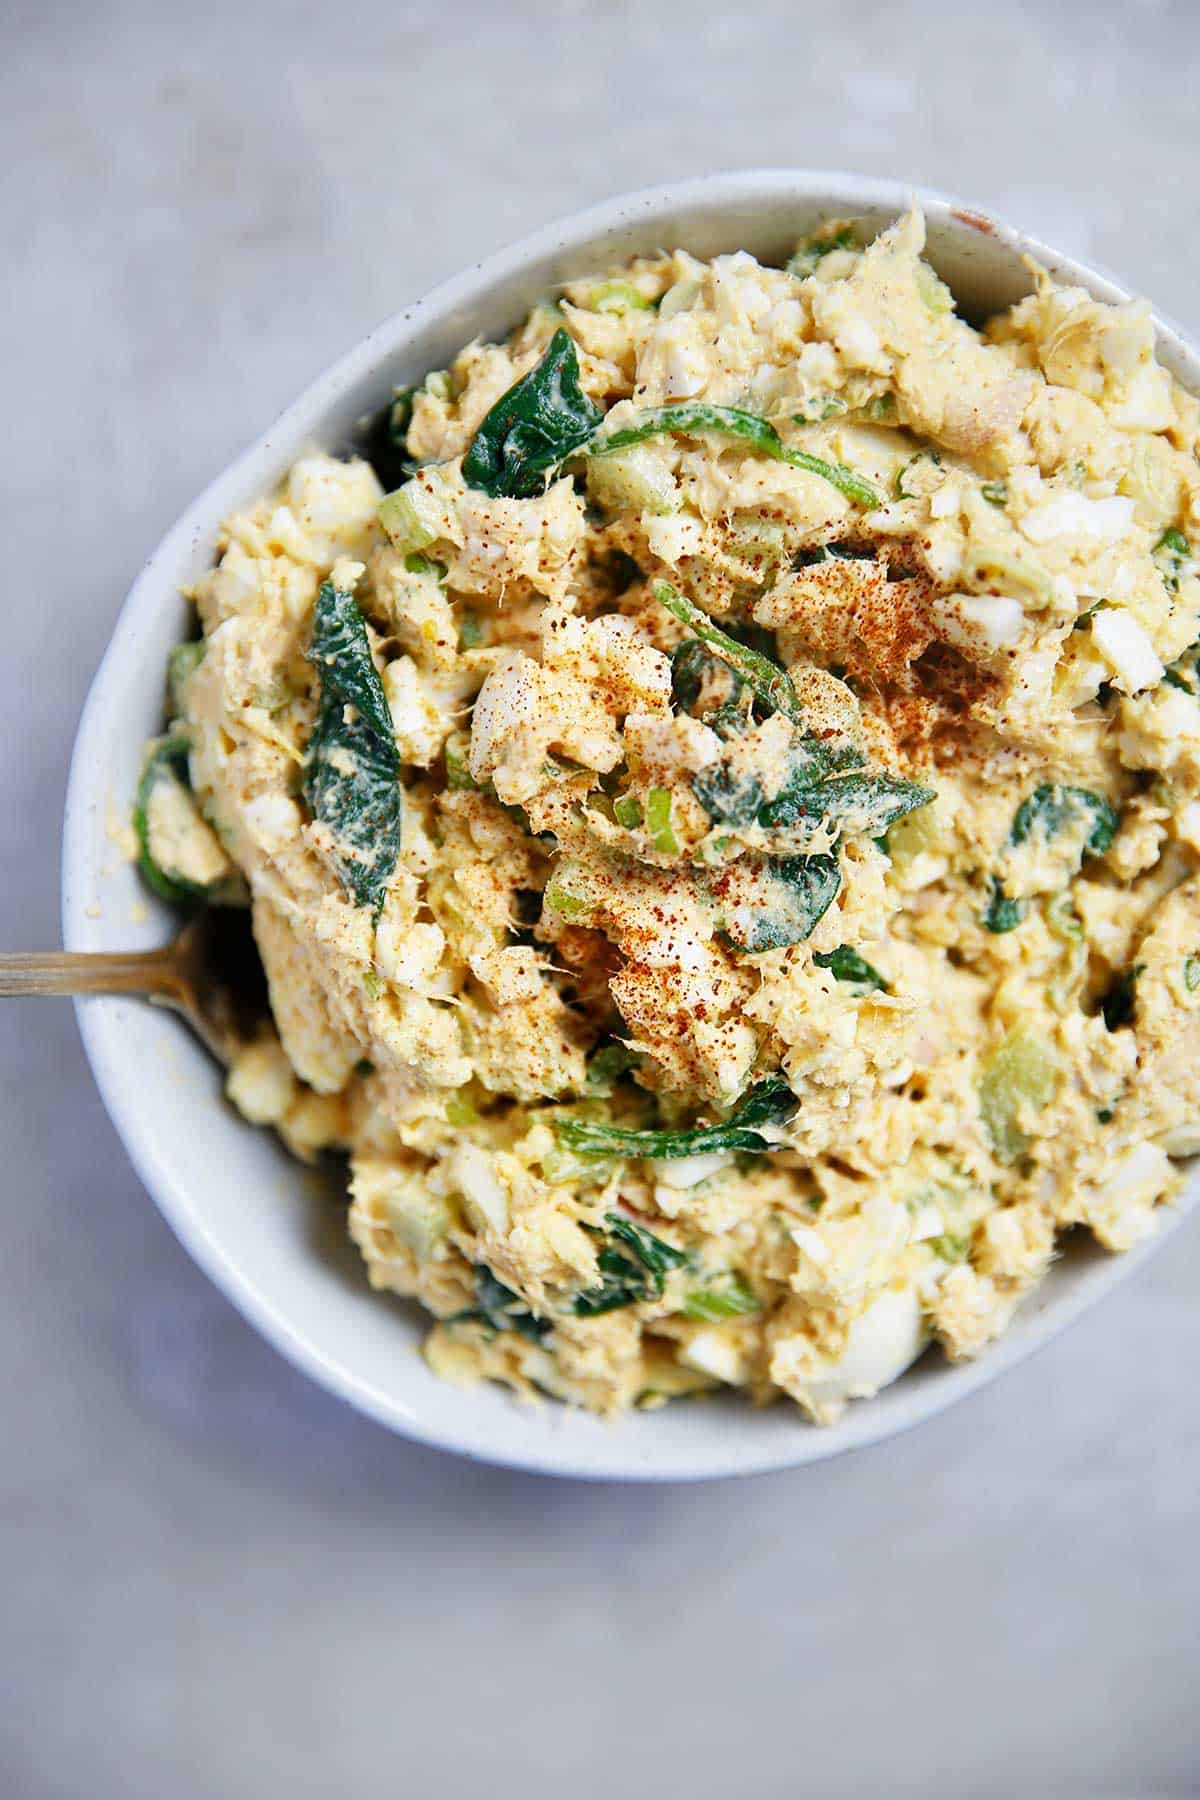 The BEST Egg Salad ever